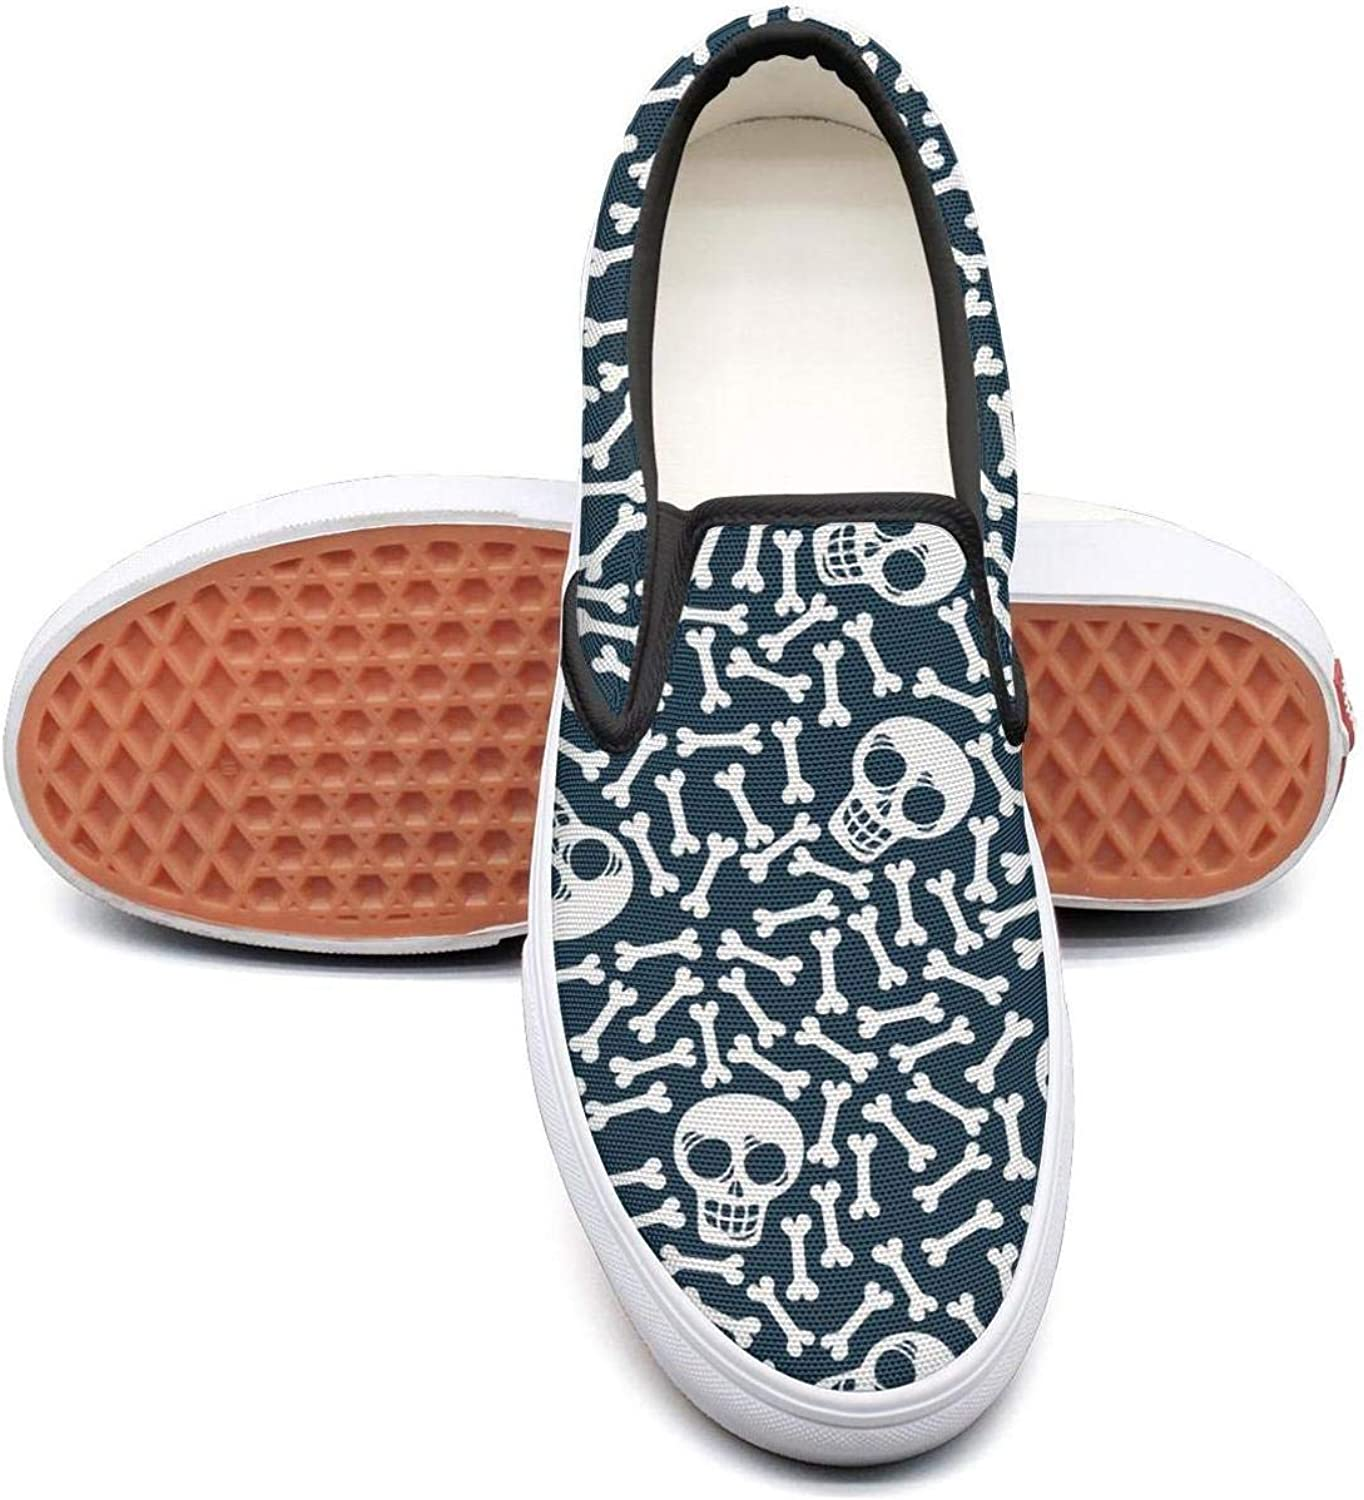 bluee Candy Los Muertos Skull Art Slip On Rubber Sole Sneakers Canvas shoes for Women Lightweight